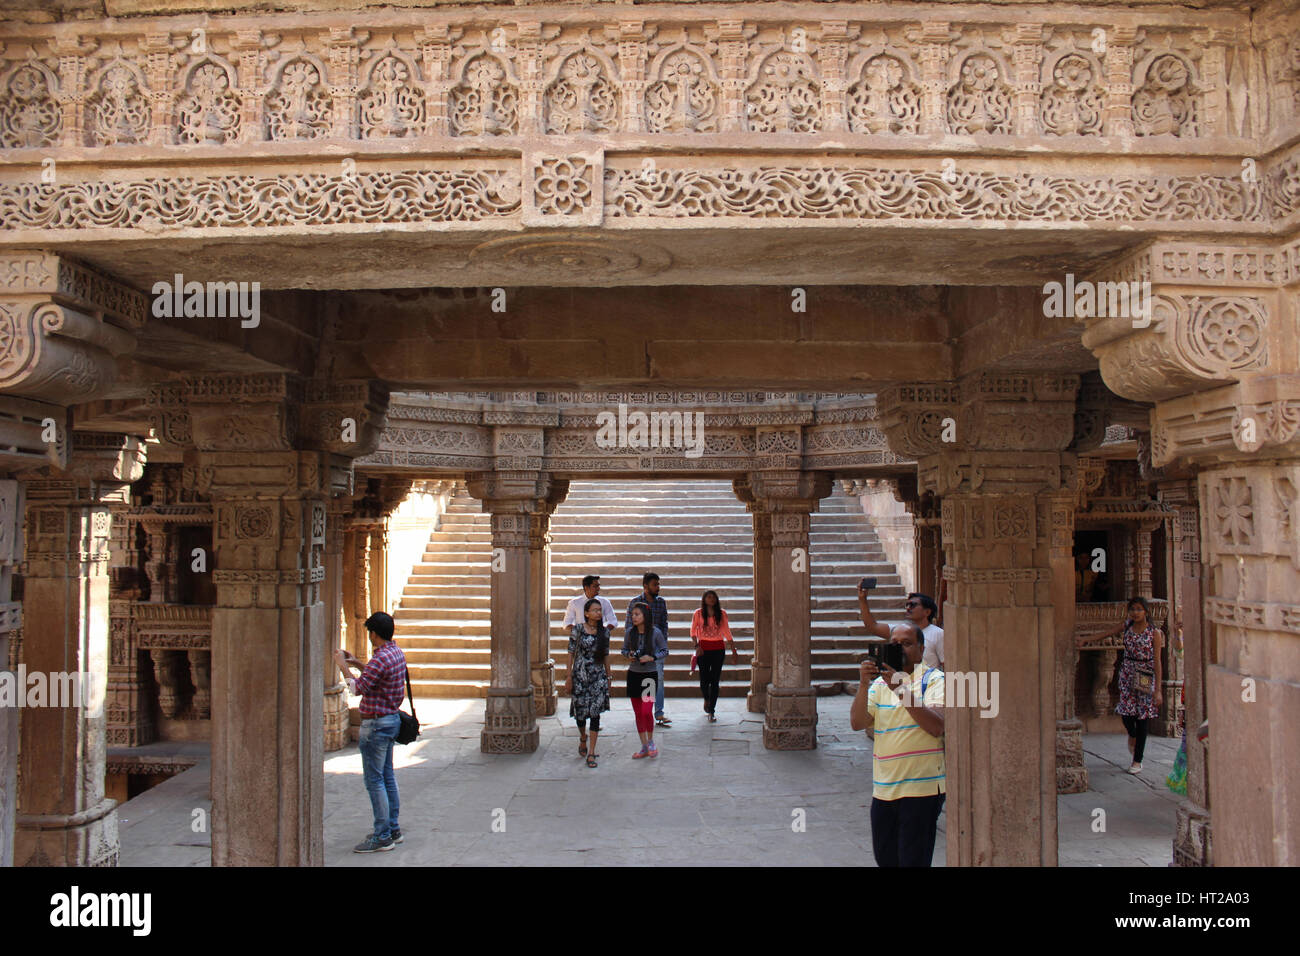 View from east inside the stepwell, decorated with intricate stone carvings in Adalaj Stepwell, Ahmedabad, Gujarat, - Stock Image